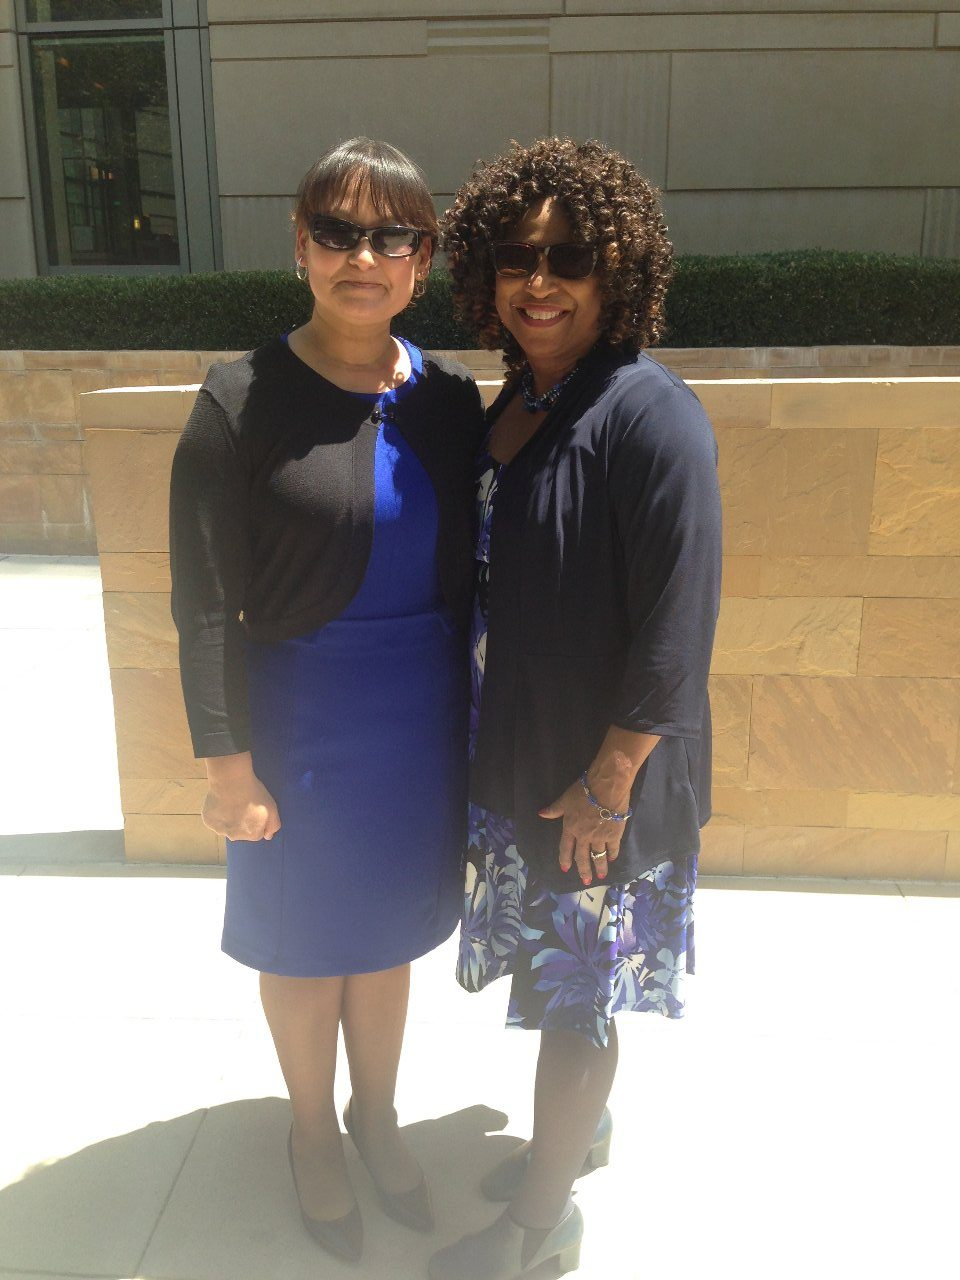 Irma Sanchez and Attorney Pamela Y. Price, June 2015